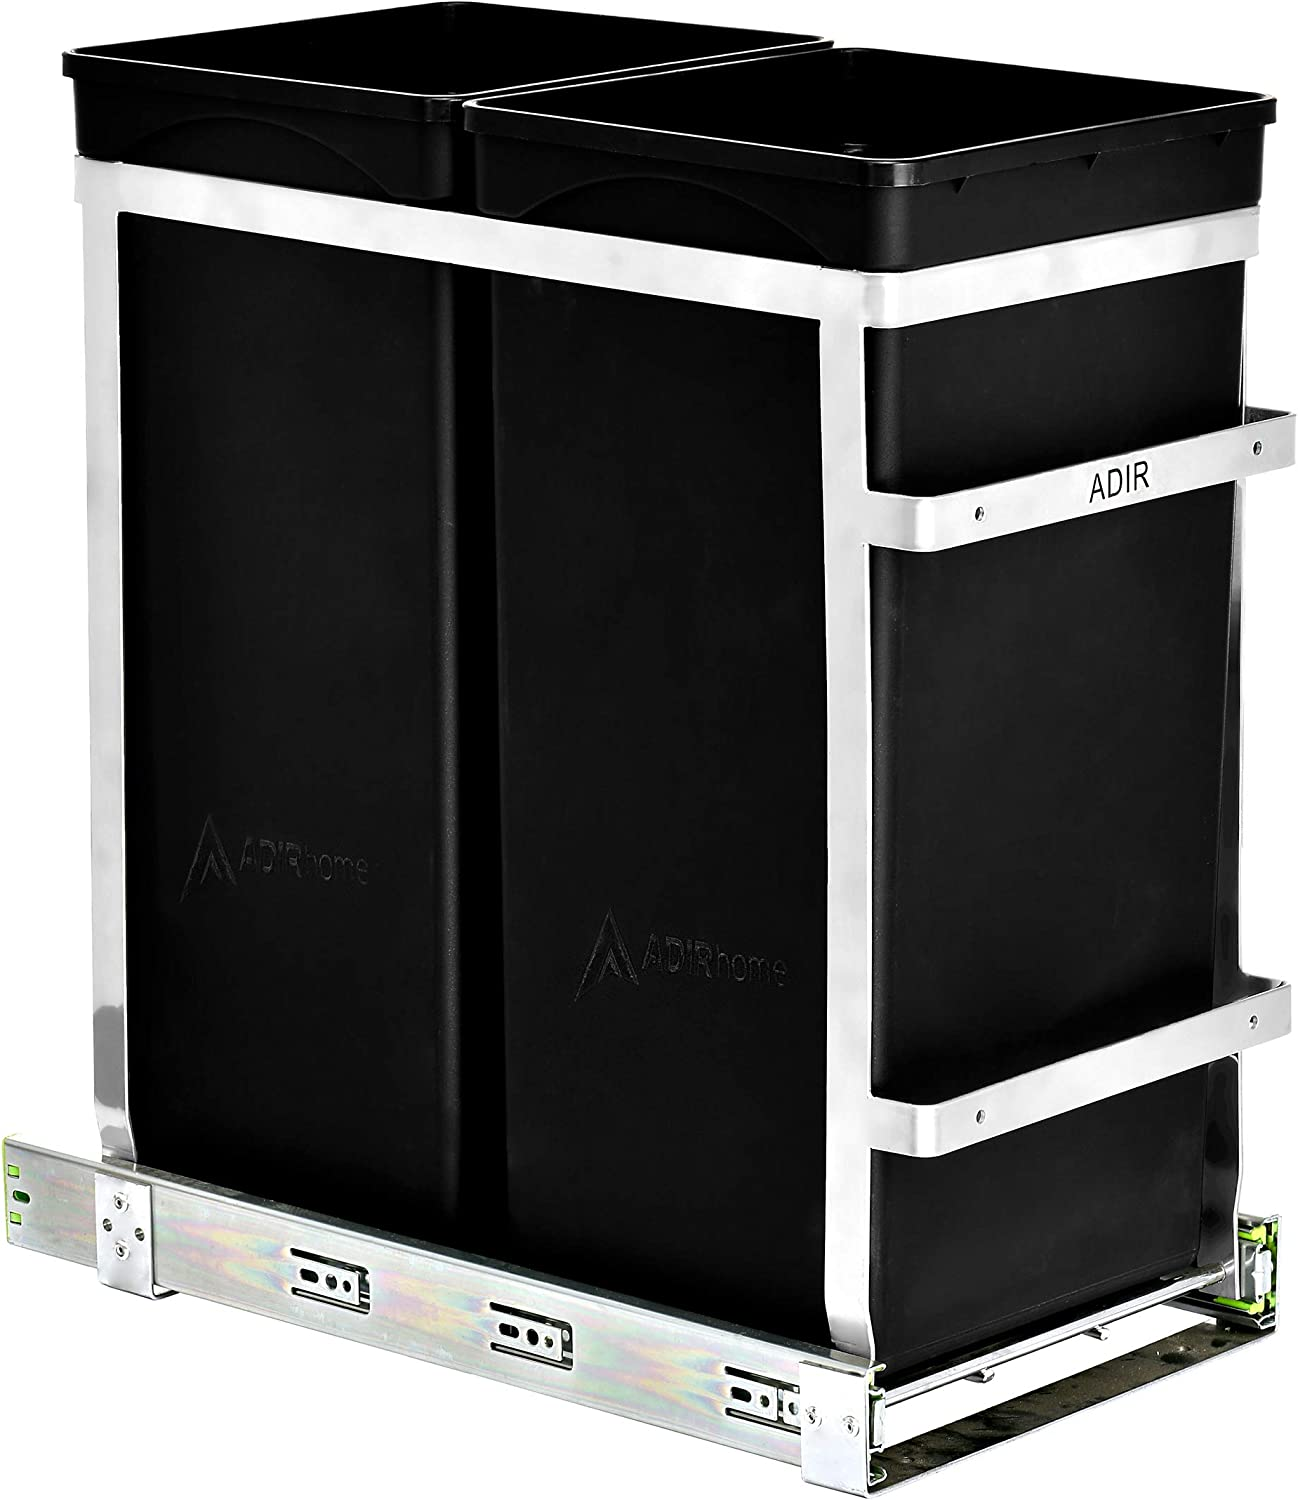 AdirHome Double Roll-Out Under-Counter 36- Liter (9.5 Gallon) Waste System - Undermount Garbage Organizer for Food Scraps and Trash - Mounted Buckets for Bathroom Shelves, Kitchen Counter and Garage